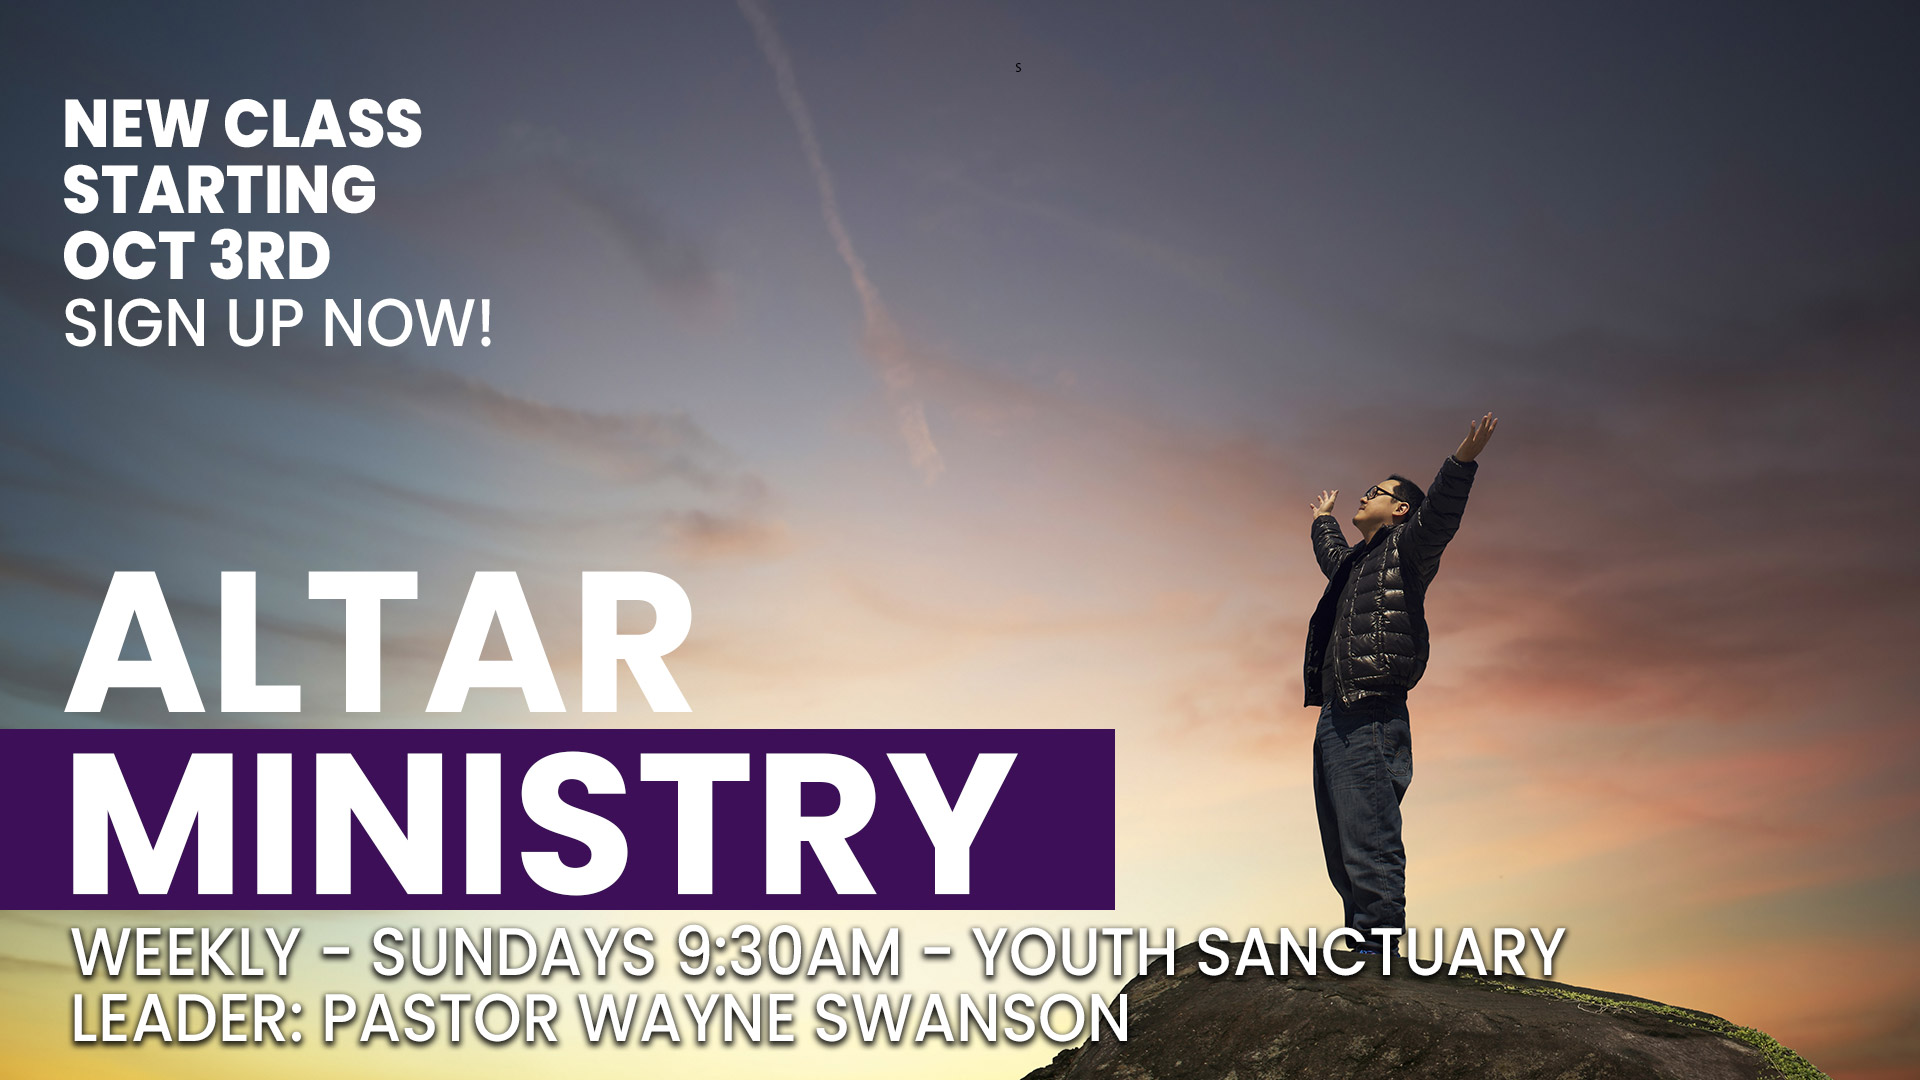 altar-ministry-new-class-oct-3